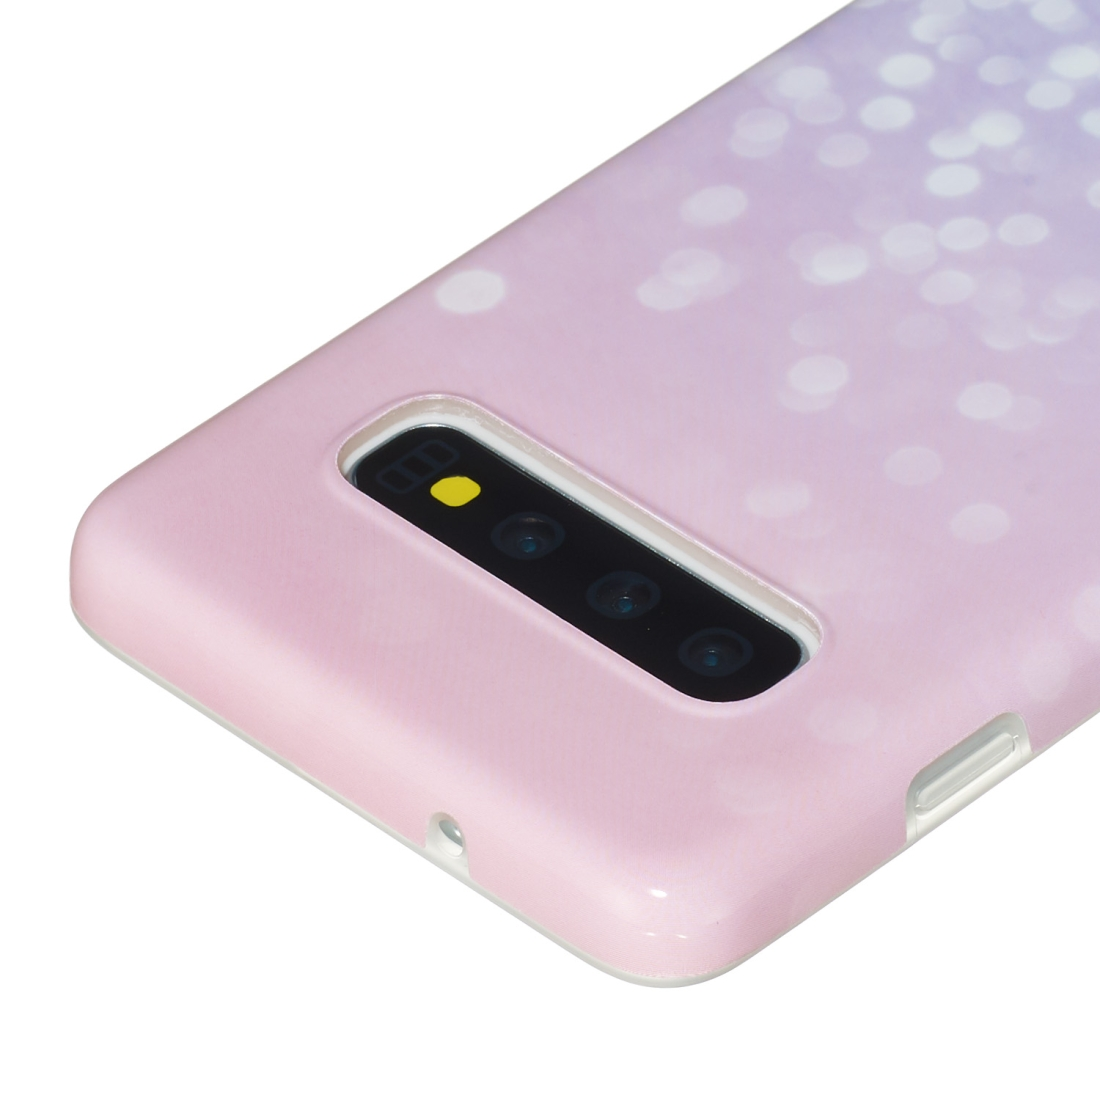 TPU Protective Case For Galaxy S10 (Bright Pink)